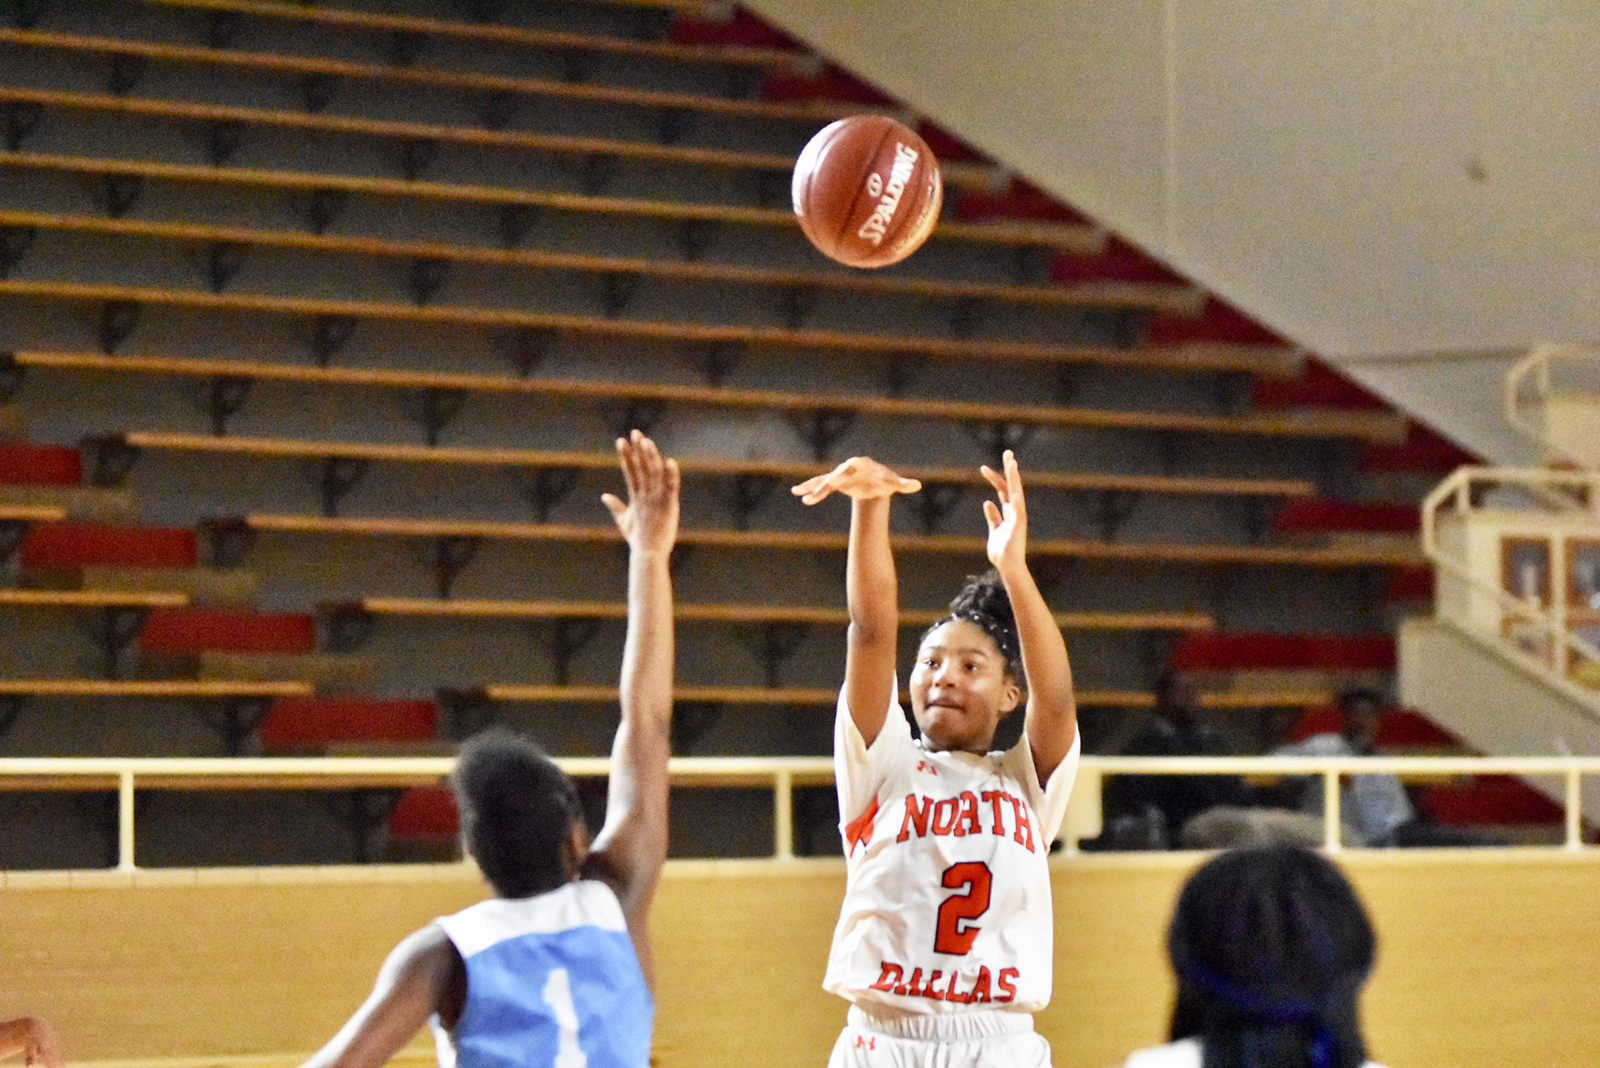 Lady Bulldogs pull away to 35-21 win in district play